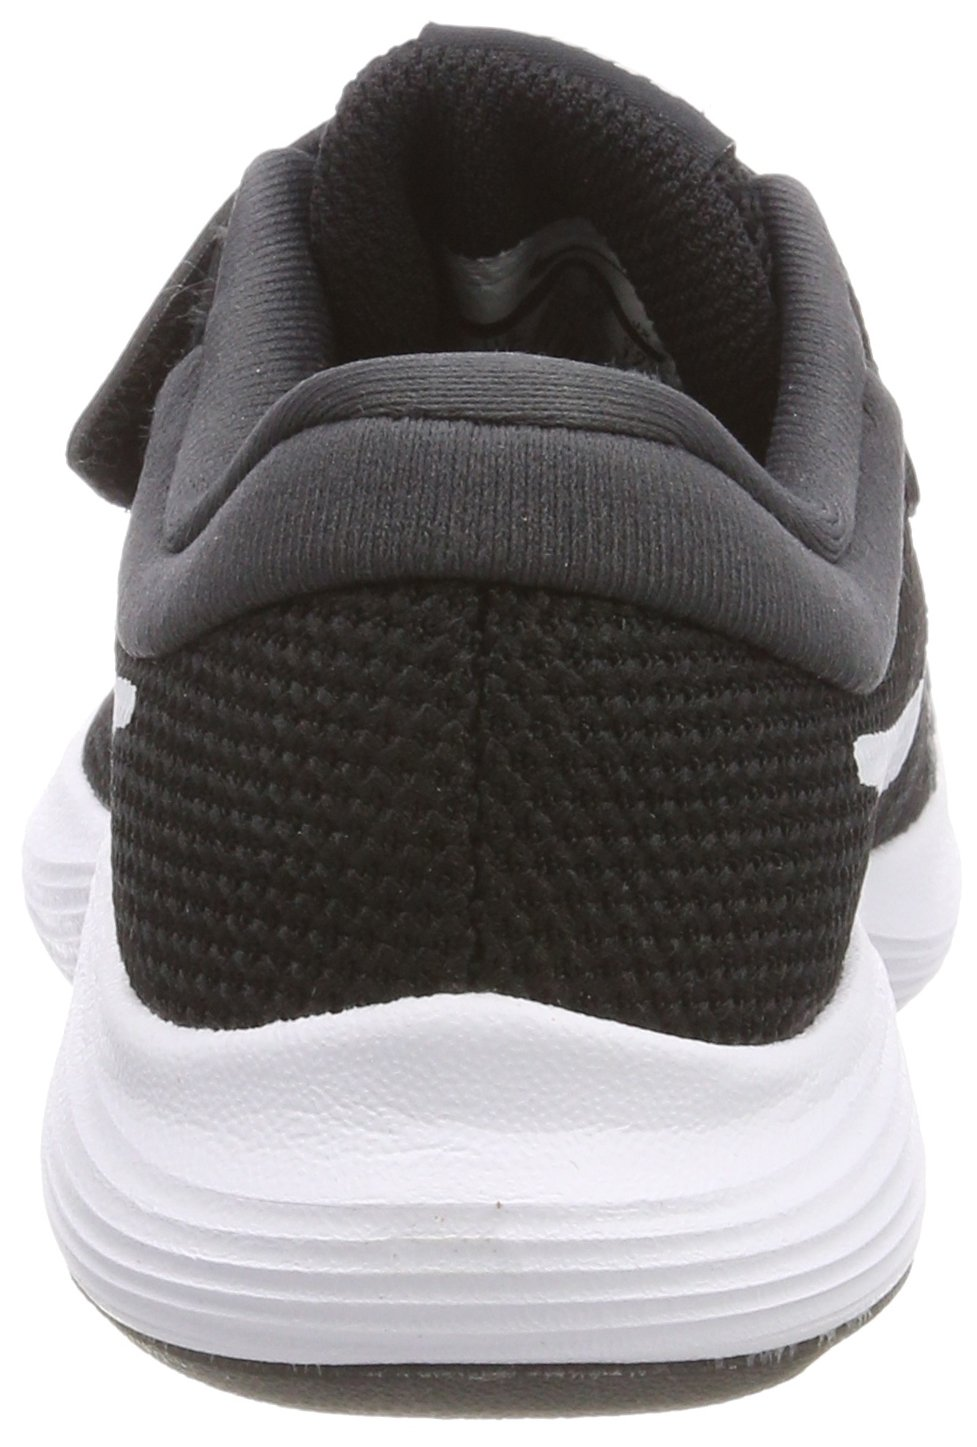 Nike Boys' Revolution 4 (PSV) Running Shoe, Black/White-Anthracite, 10.5C Youth US Little Kid by Nike (Image #2)